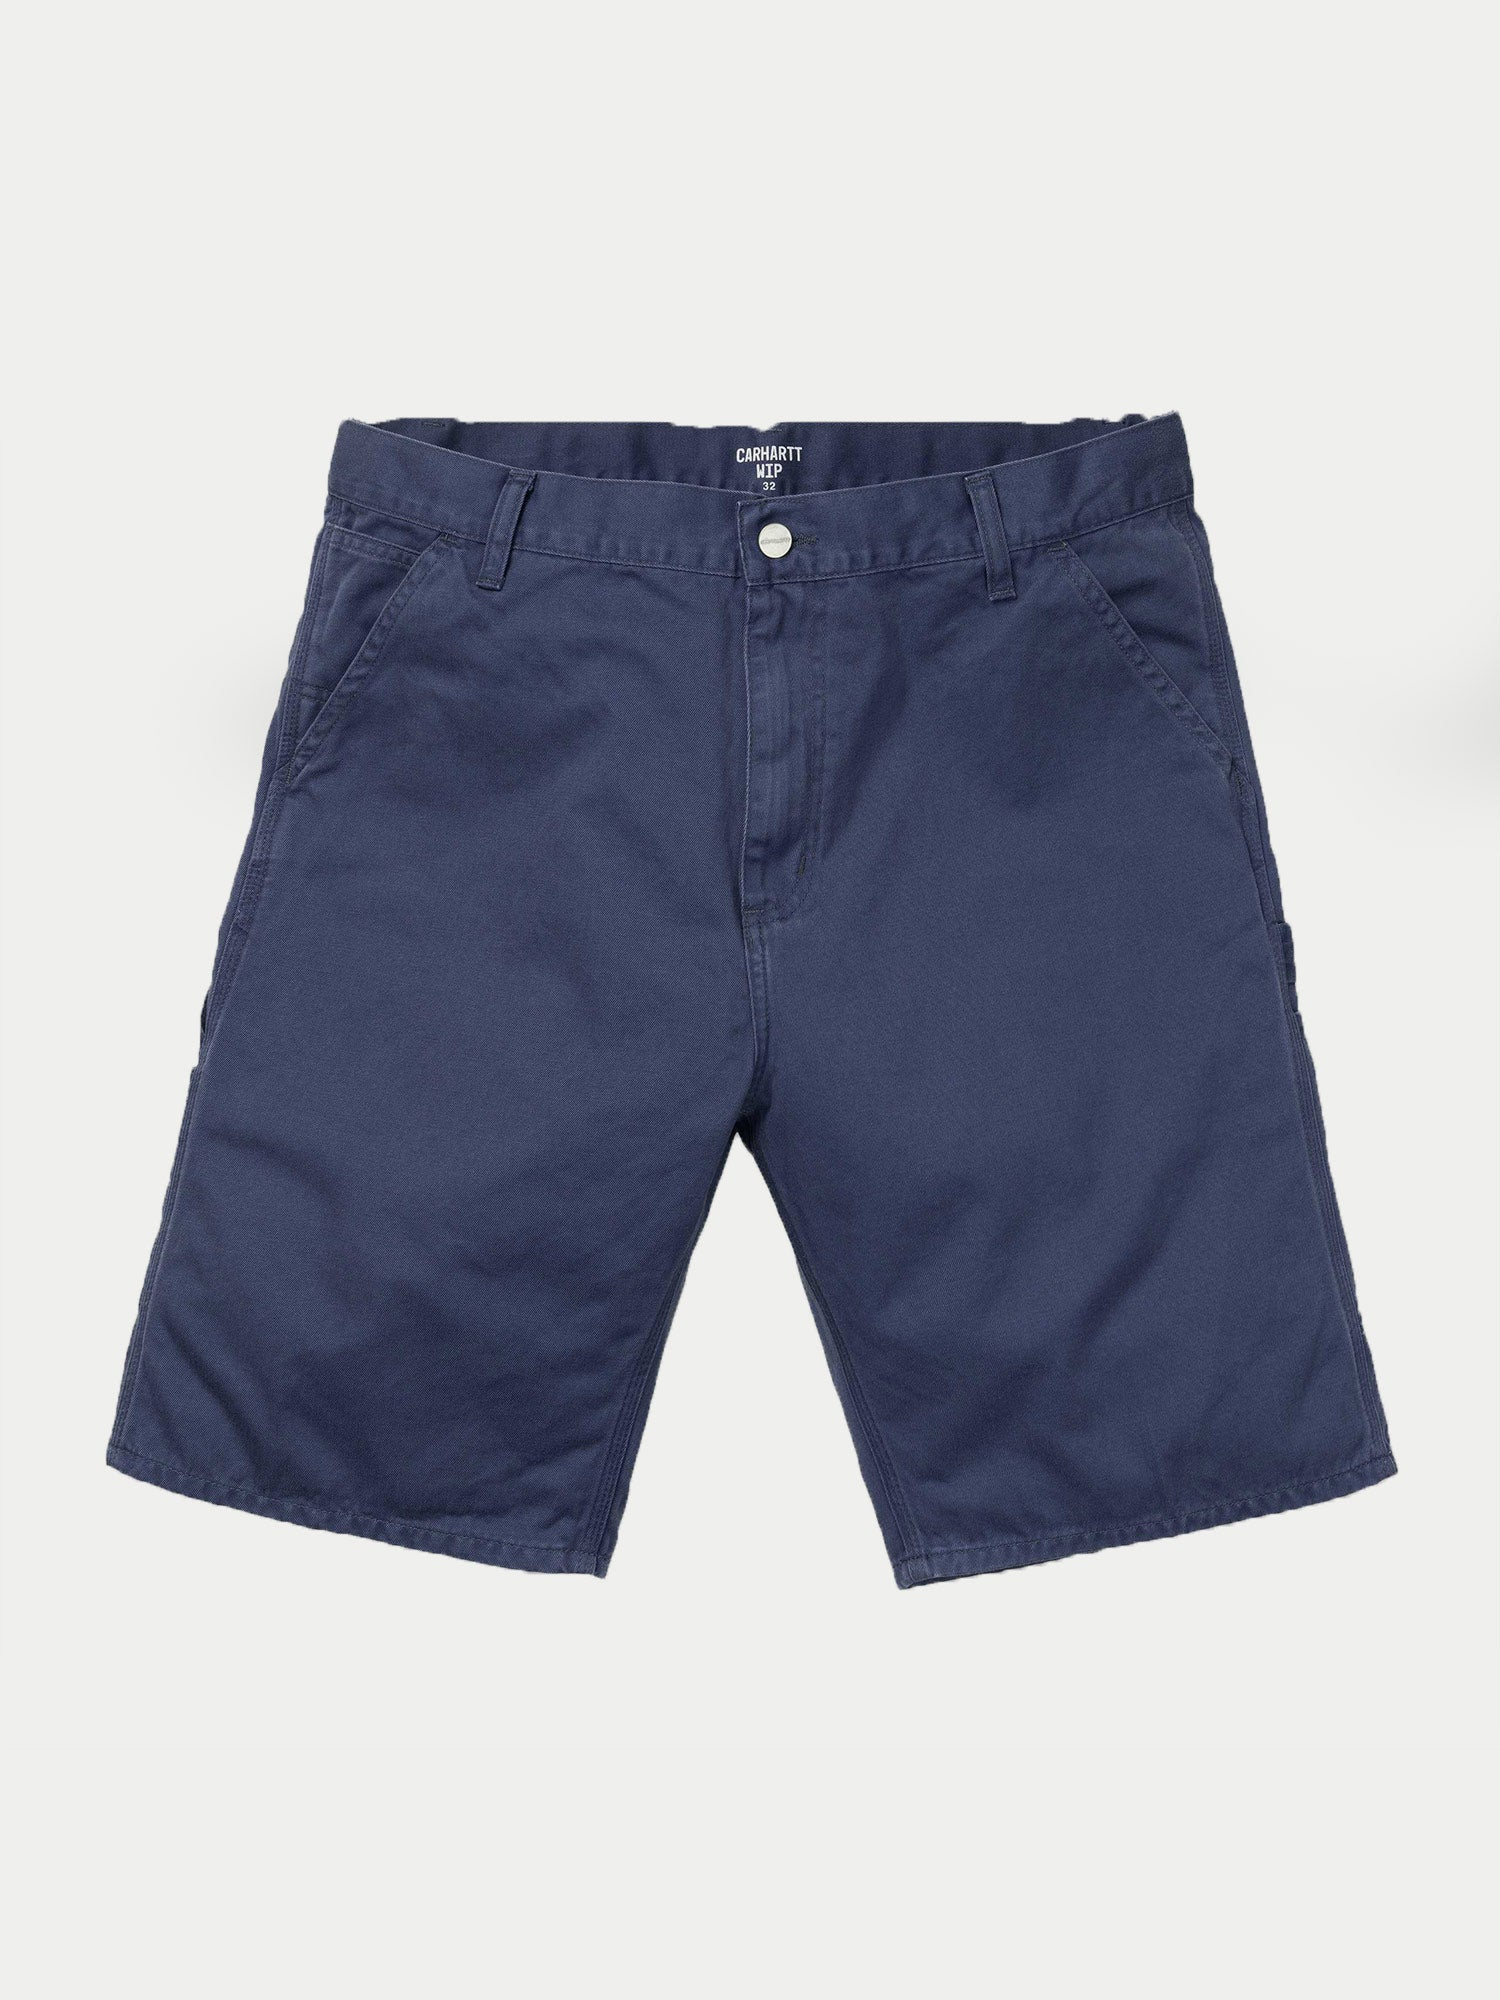 Carhartt Ruck Single Knee Shorts (Blue Stonewashed)